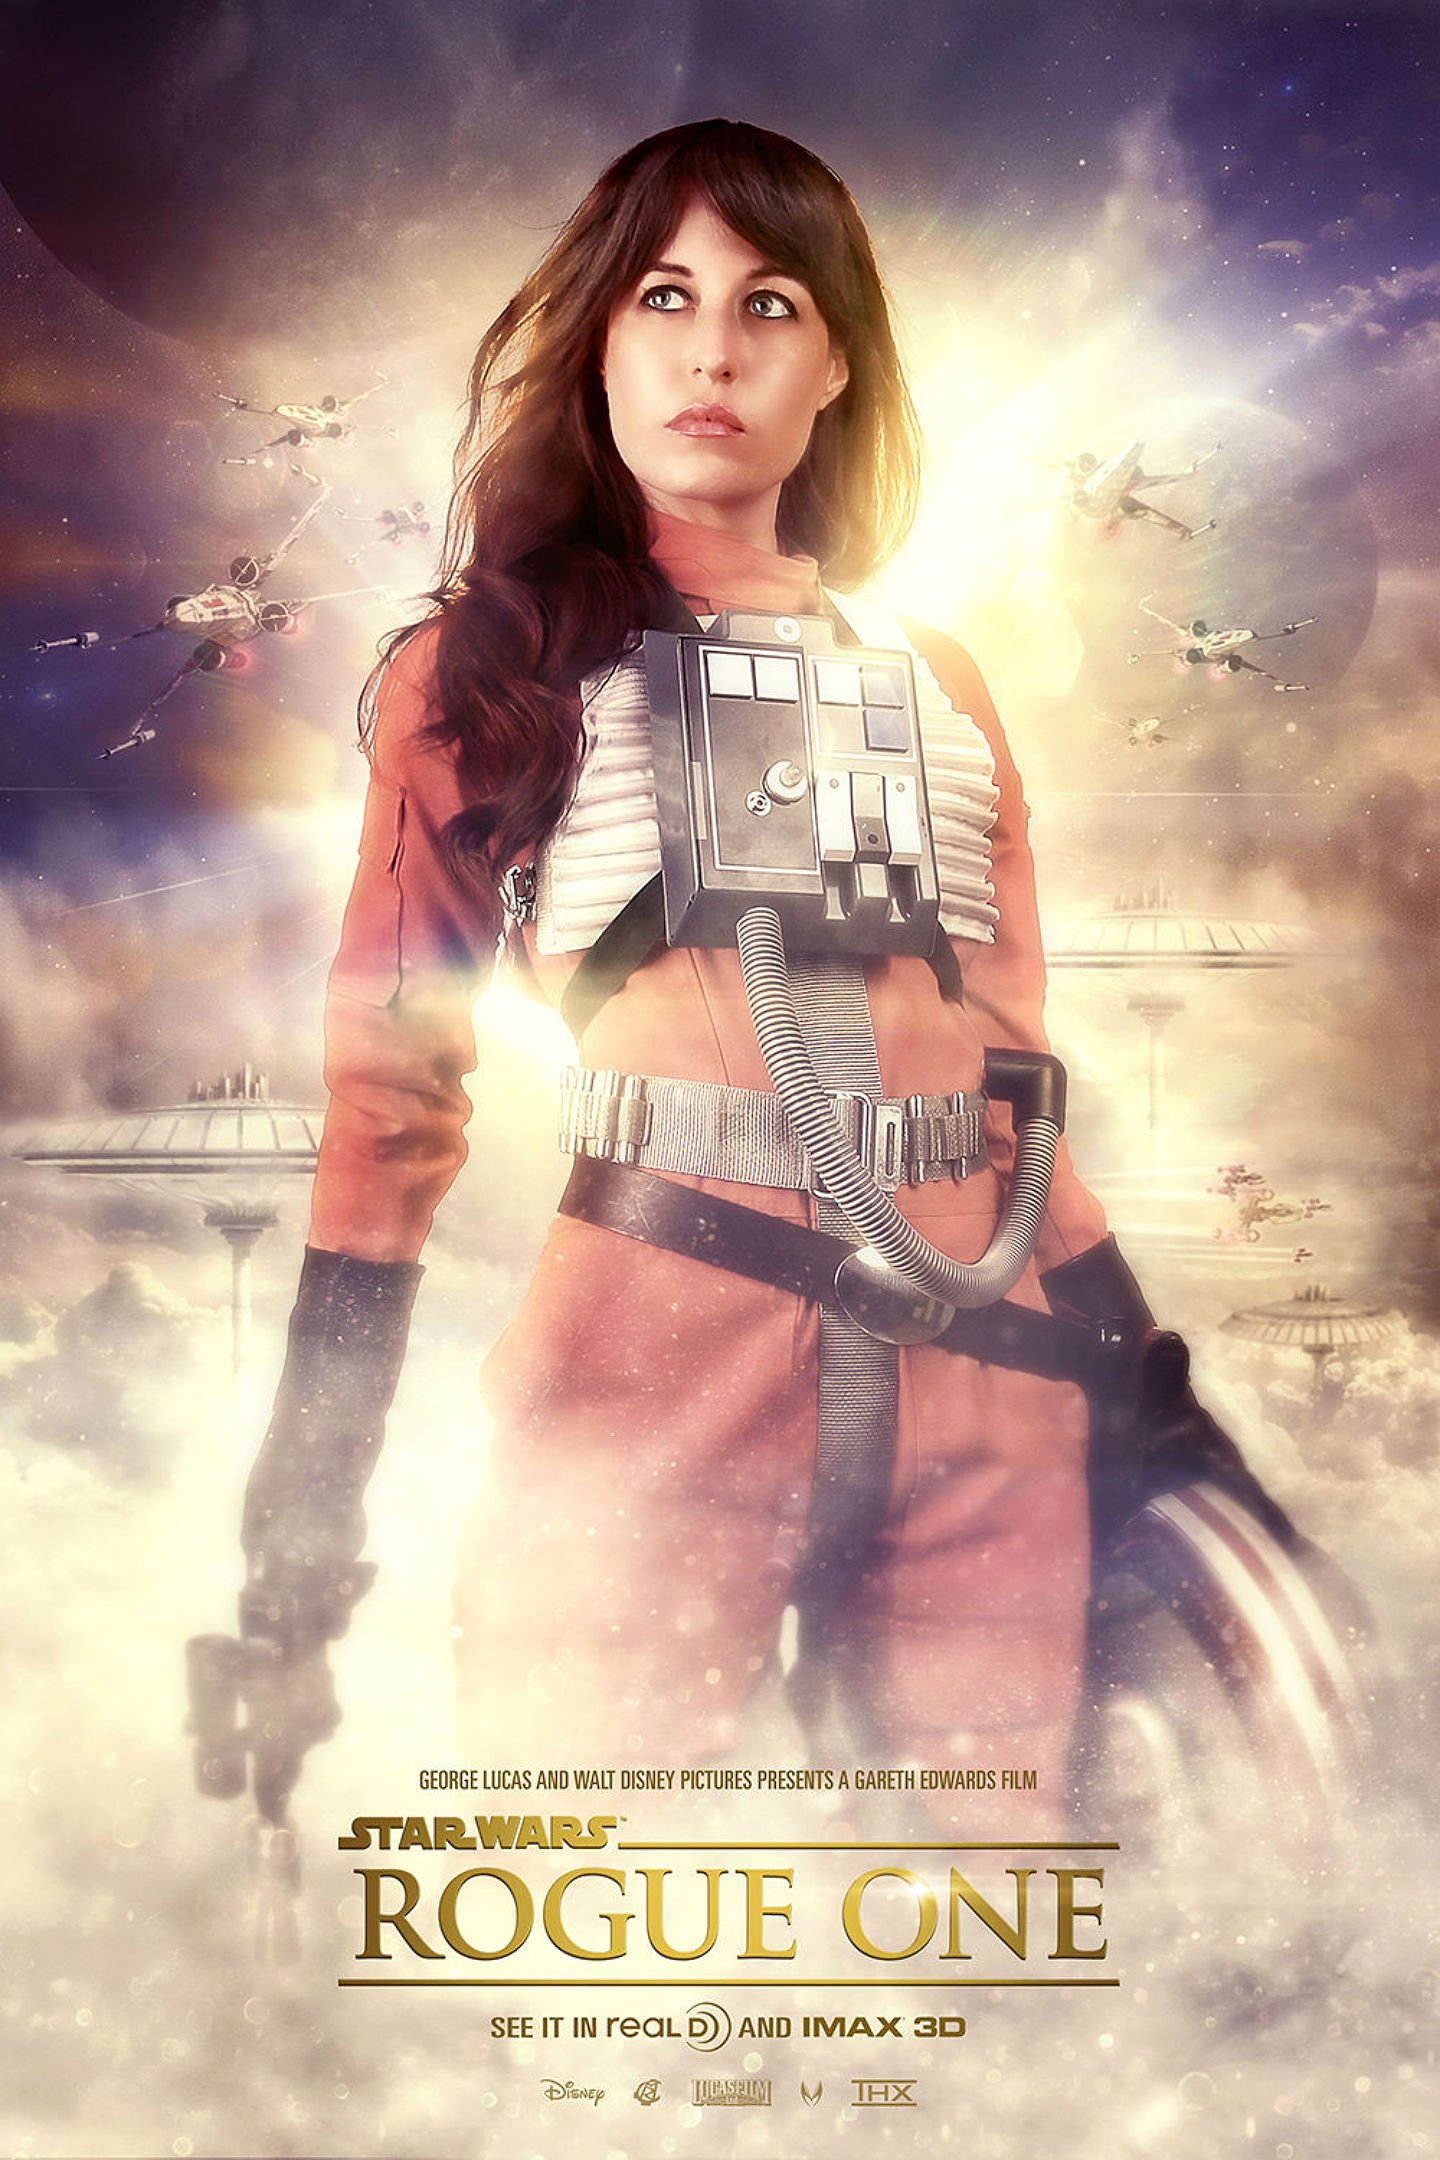 Rogue One Star Wars Story Sci Fi Space Futuristic Opera 1rosw Disney Action Fighting Poster Wallpaper 1440x2160 811985 Wallpaperup